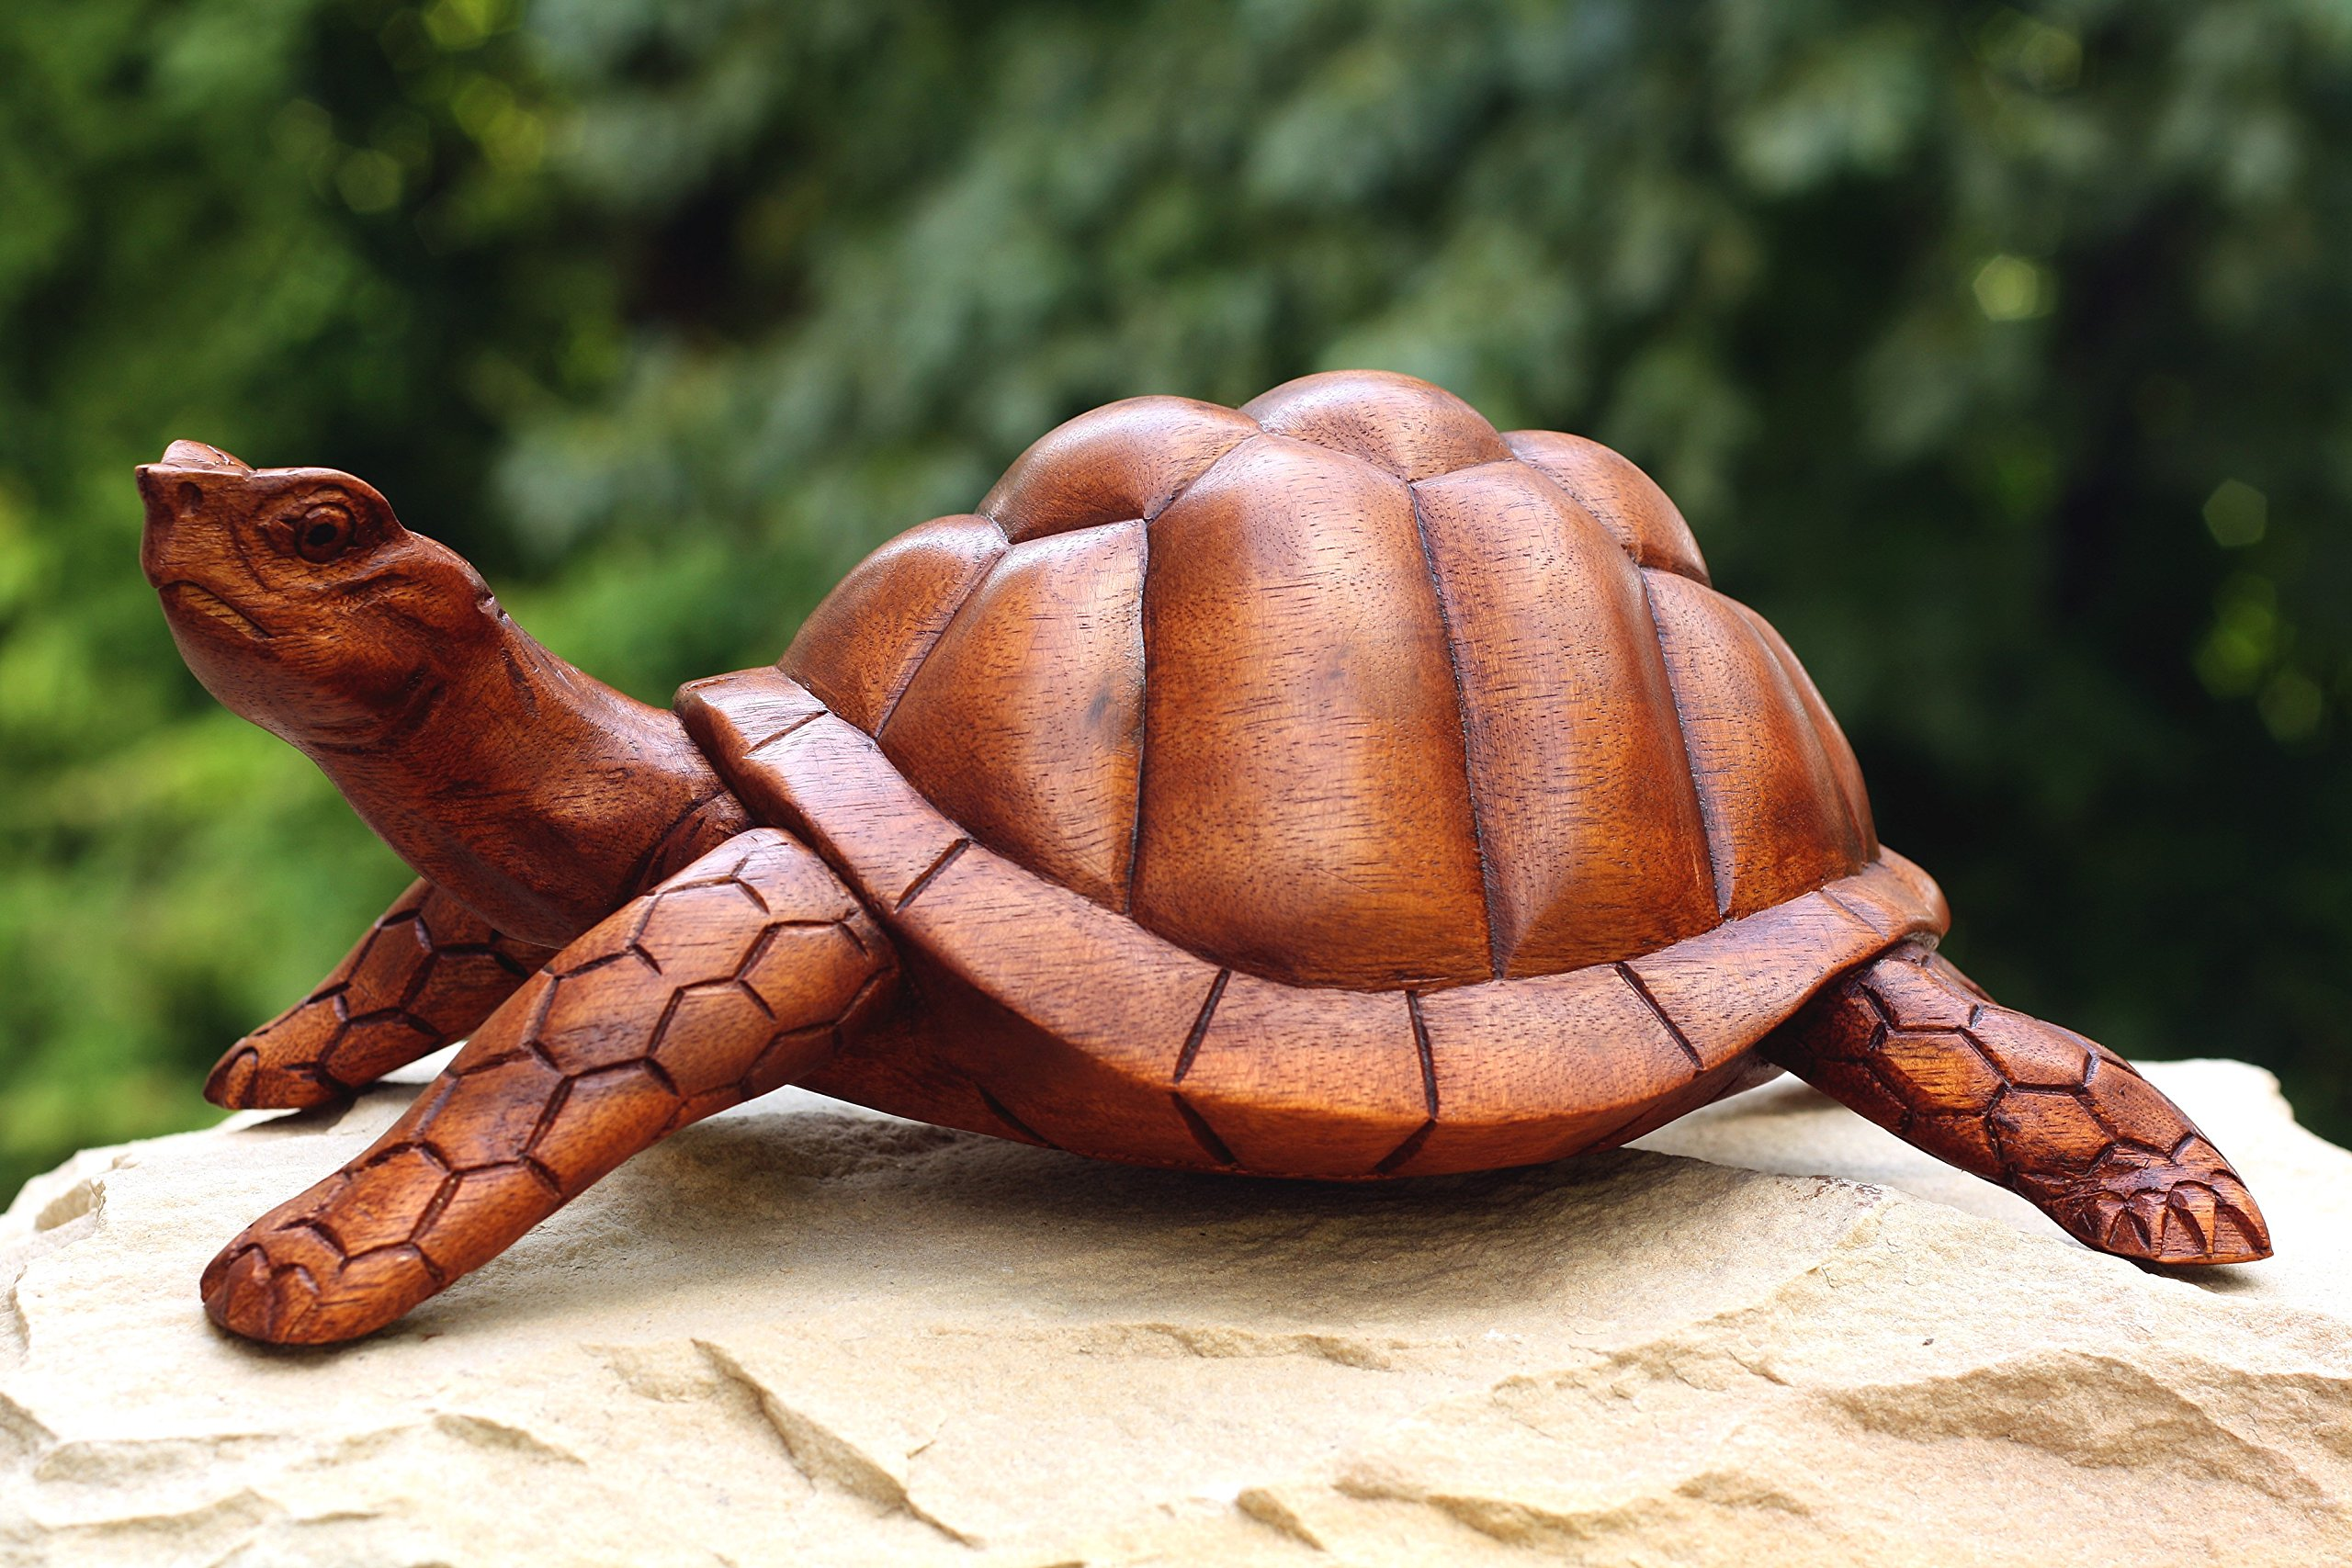 G6 Collection 12'' Large Wooden Tortoise Turtle Statue Hand Carved Sculpture Wood Home Decor Figurine